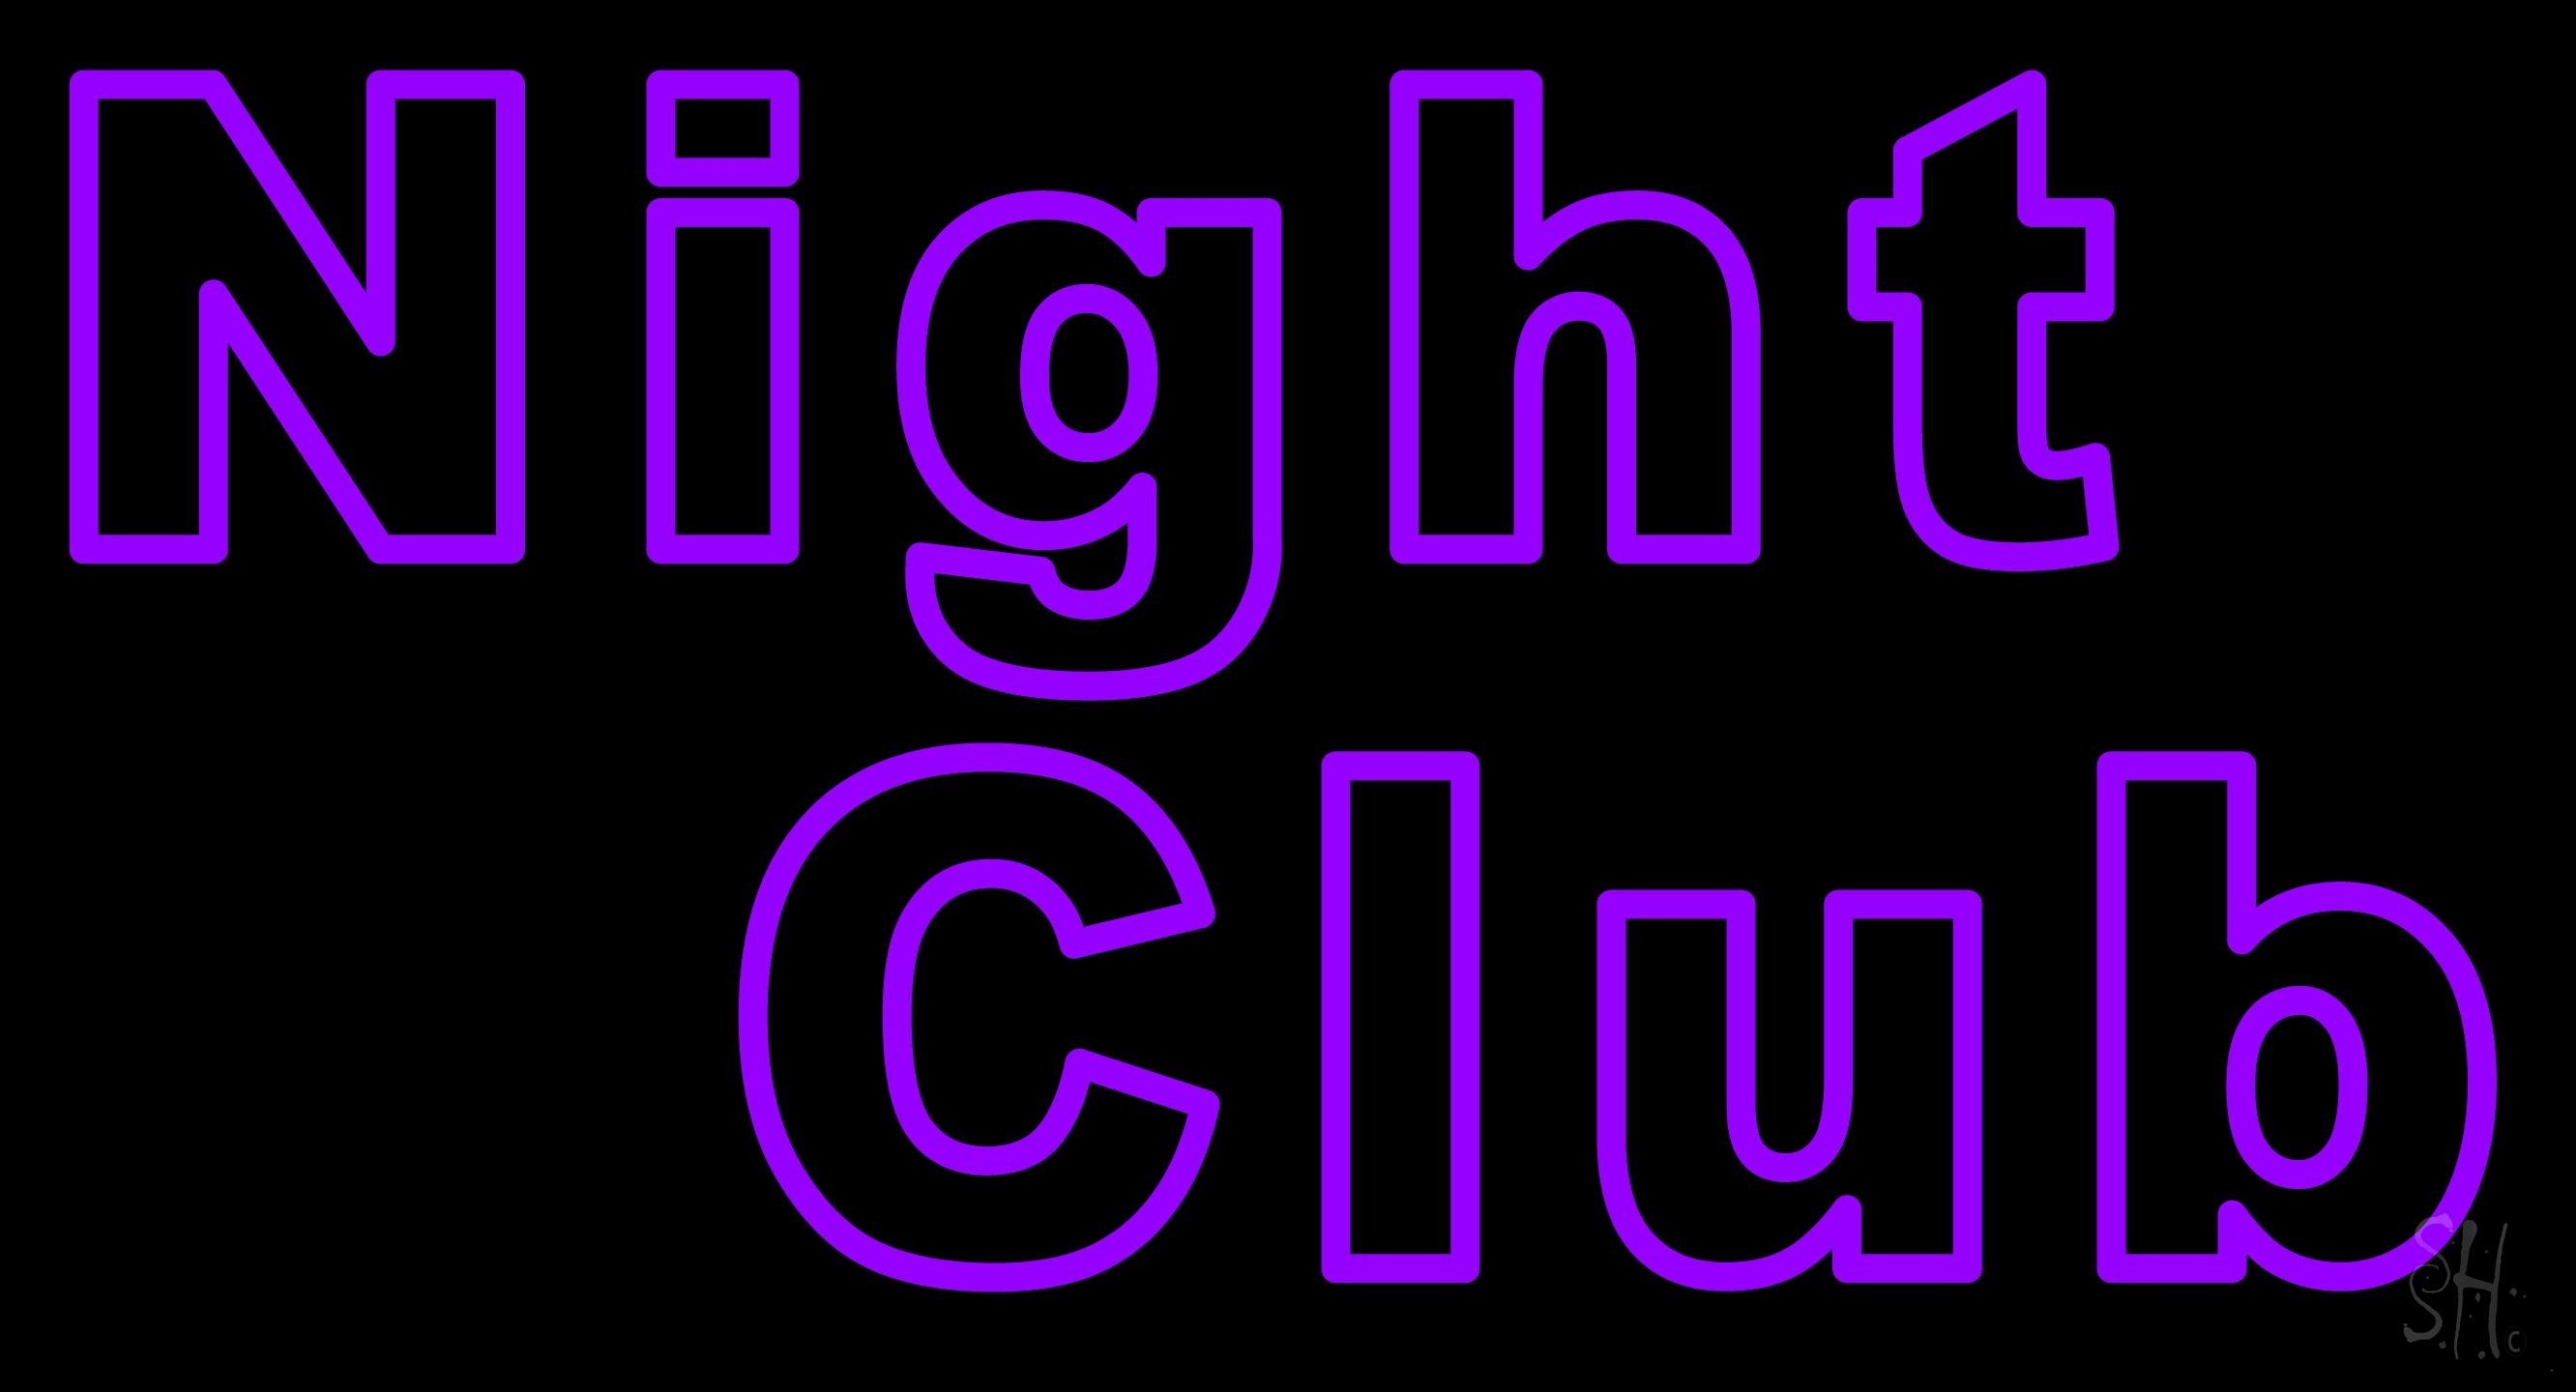 Purple Block Night Club Neon Sign  Club Neon Sign  Every. Fortune Signs. Heat Signs. Diabetes Symptom Signs Of Stroke. Confirmation Signs Of Stroke. Companion Signs. Leser Trélat Signs. Statistics Infographic Signs. Pool Signs Of Stroke